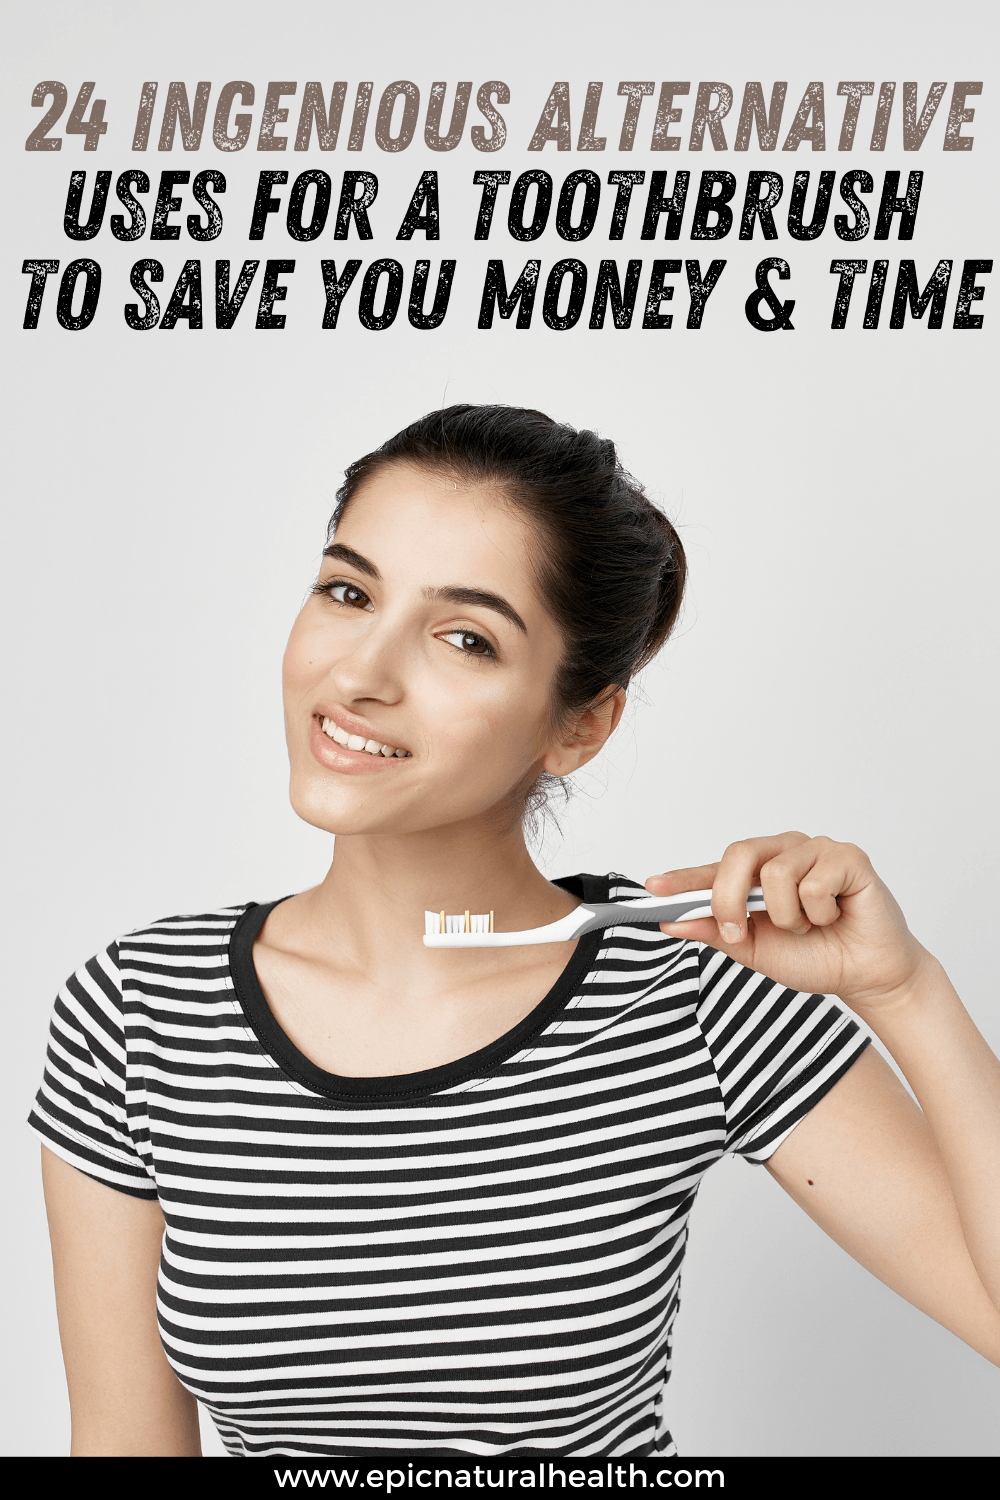 24 Ingenious alternative uses for a toothbrush to save you money and time